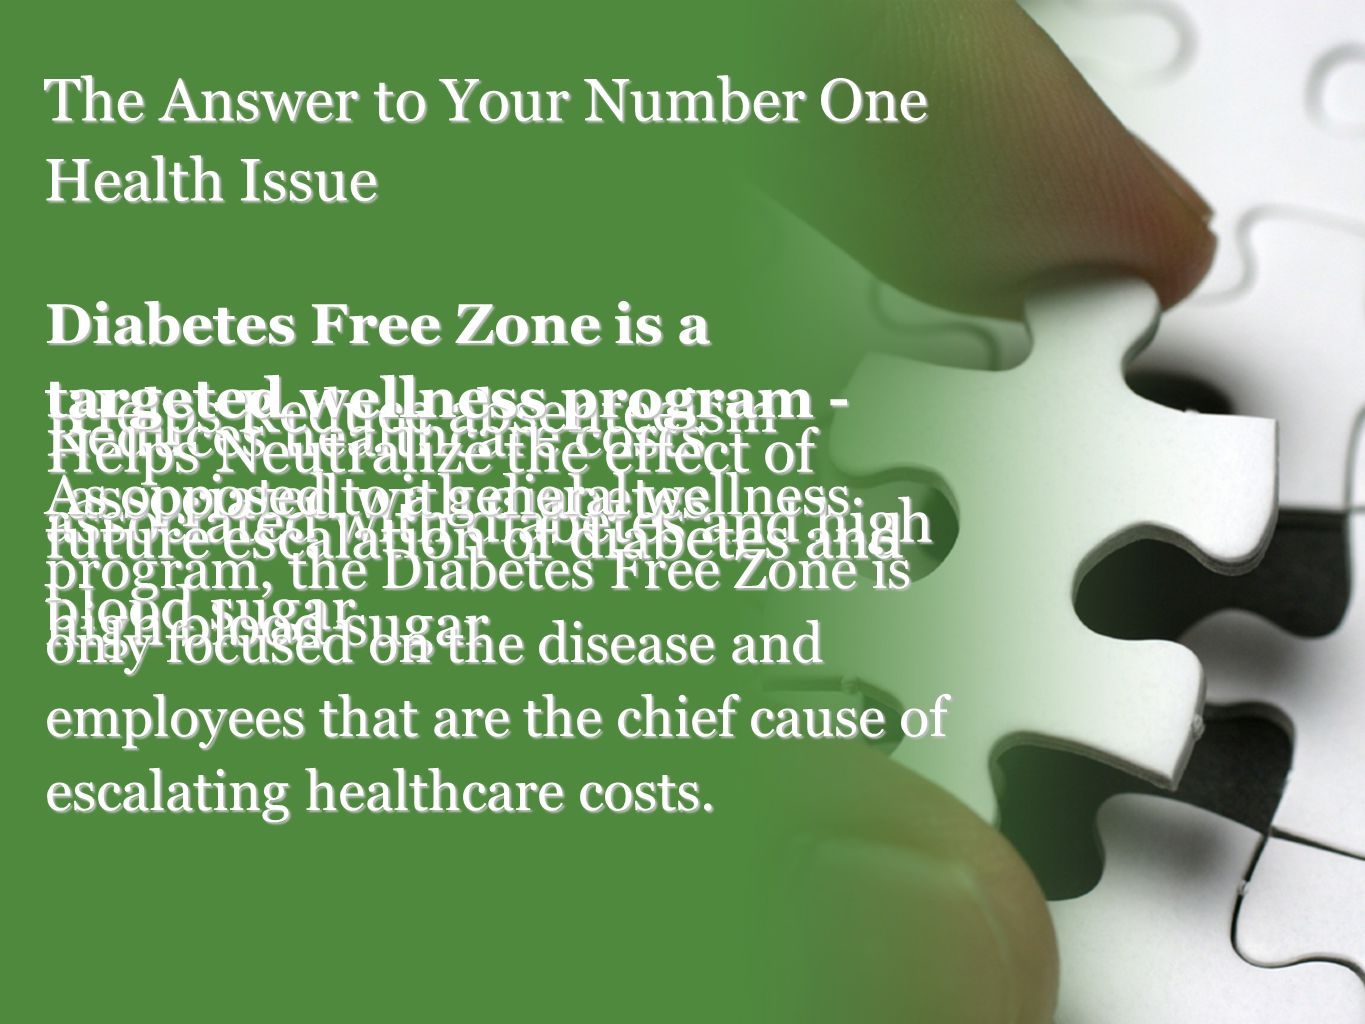 The Answer to Your Number One Health Issue Reduces healthcare costs associated with diabetes and high blood sugar Helps Reduce absenteeism associated